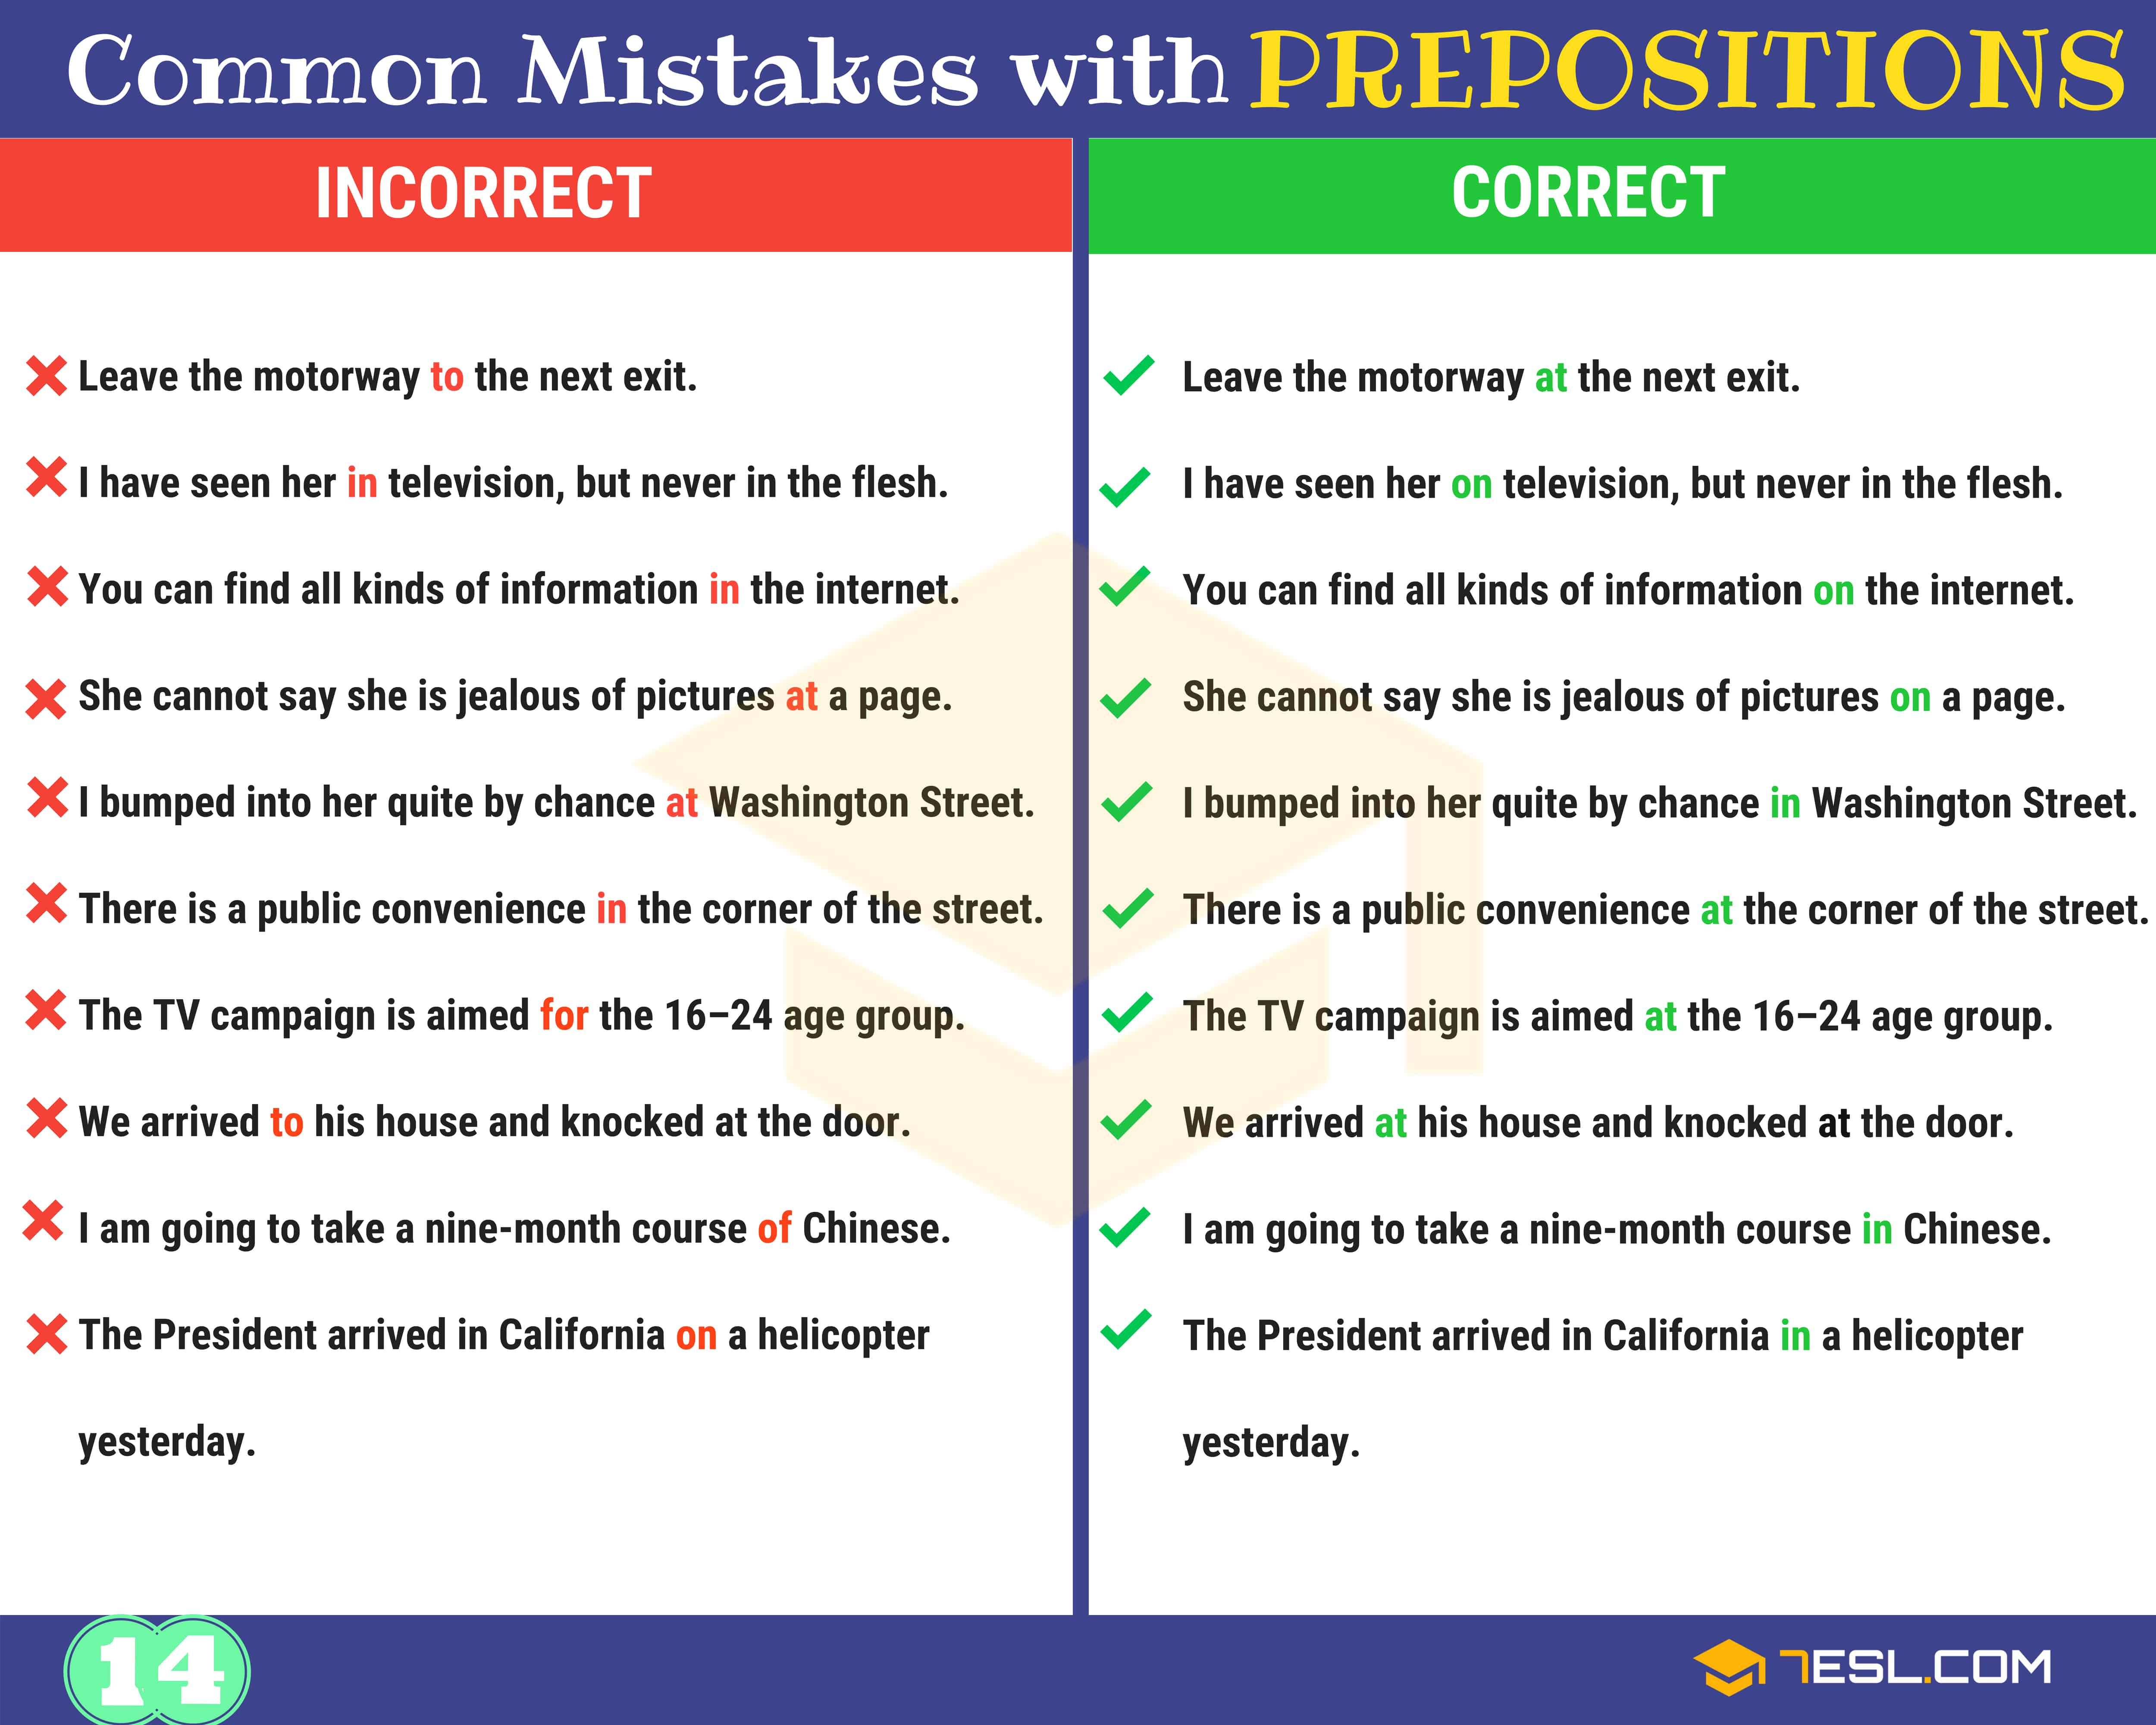 130+ Common MISTAKES With PREPOSITIONS And How To Avoid Them 15